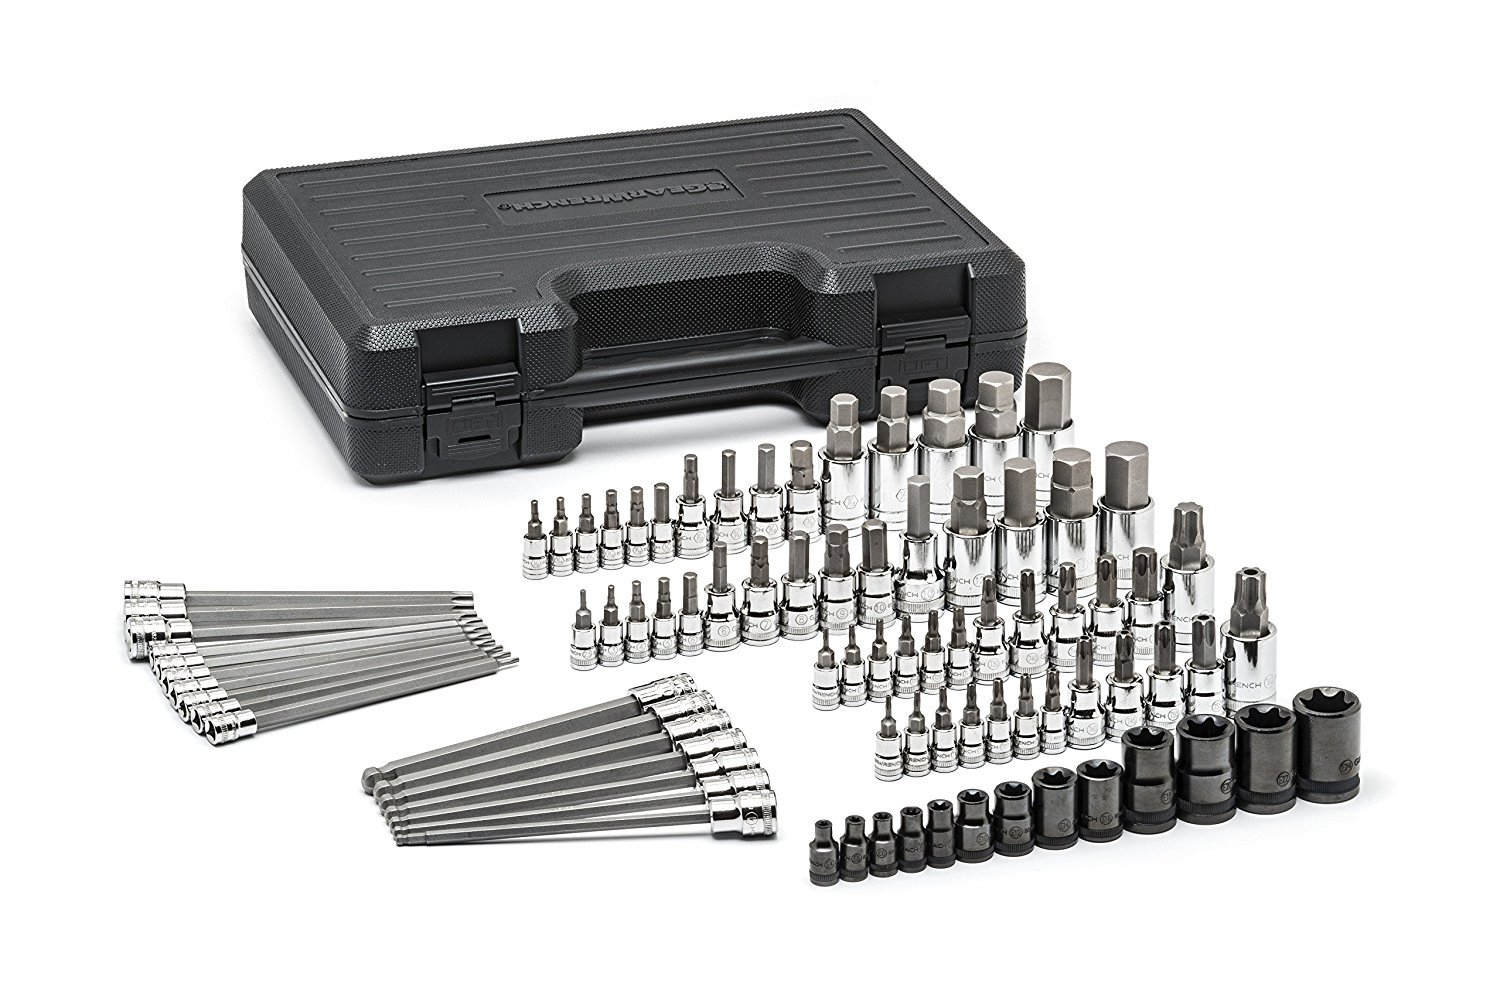 GearWrench 80742 Master SAE/Metric Hex and Torx Bit Socket Set (84 Piece)